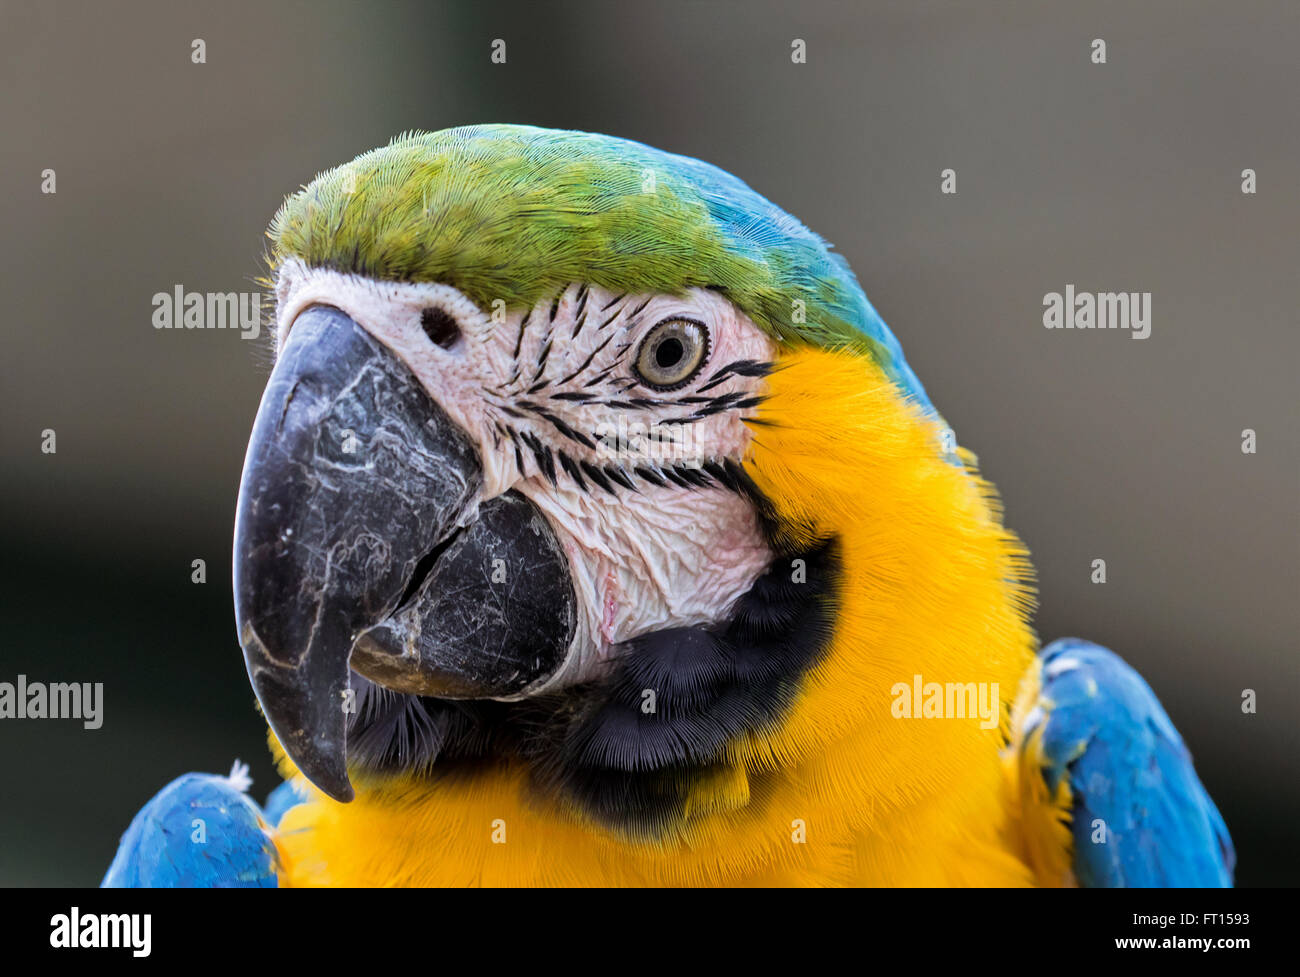 Macaw Parrot - Stock Image